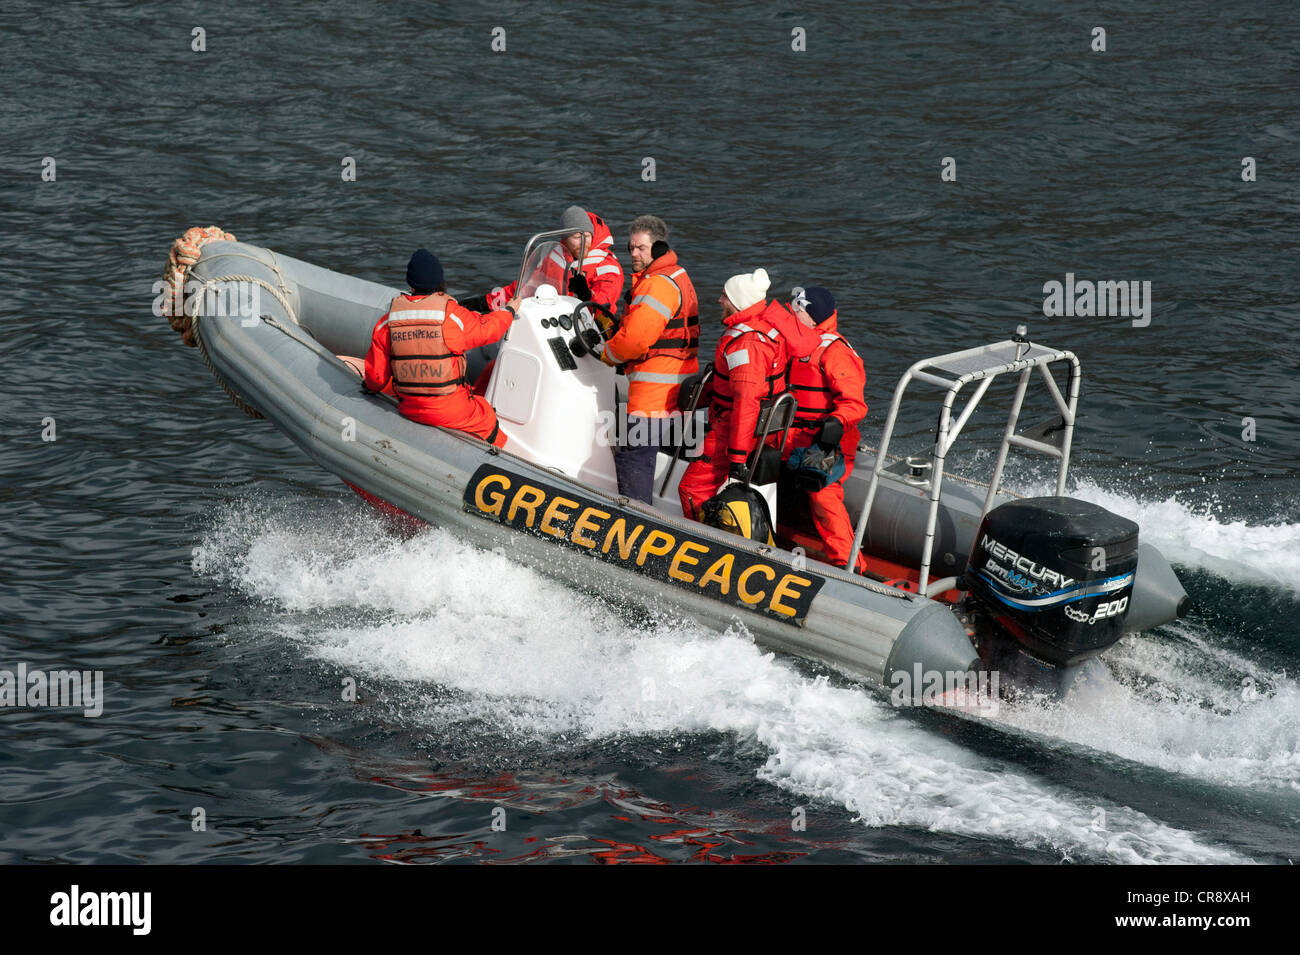 Greenpeace activists in an inflatable boat - Stock Image